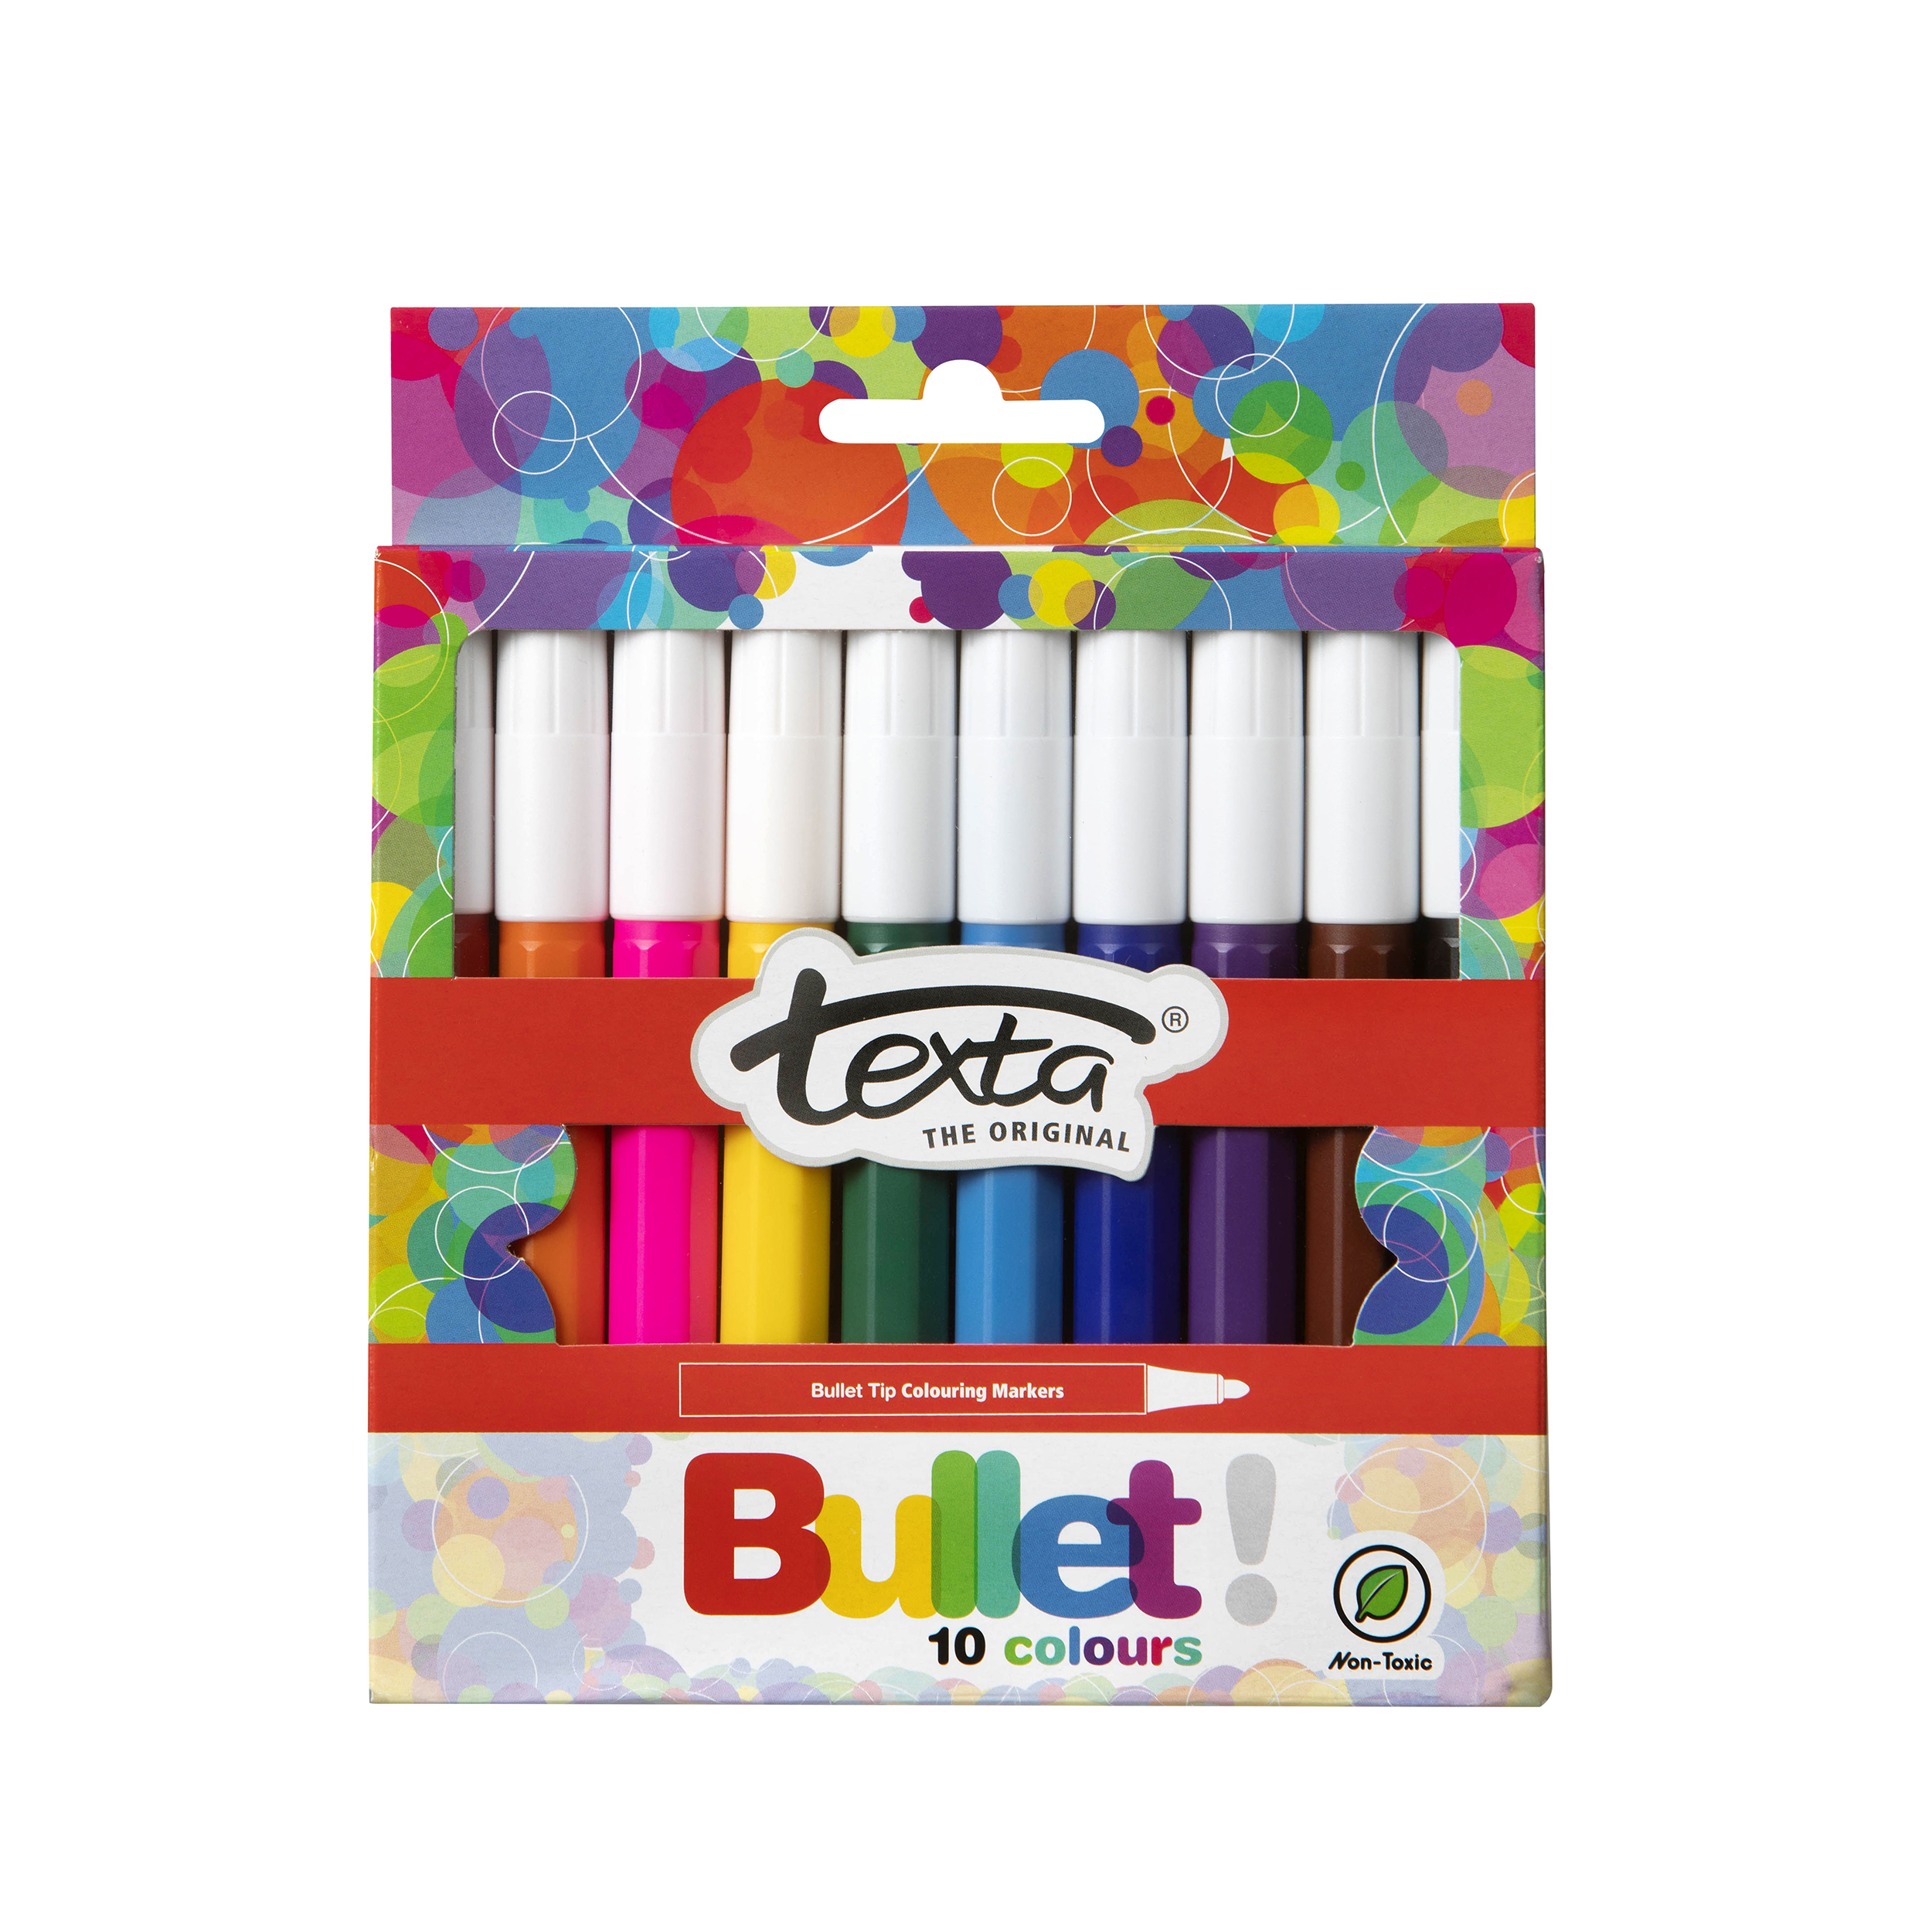 Bullet Tip Colouring In Markers